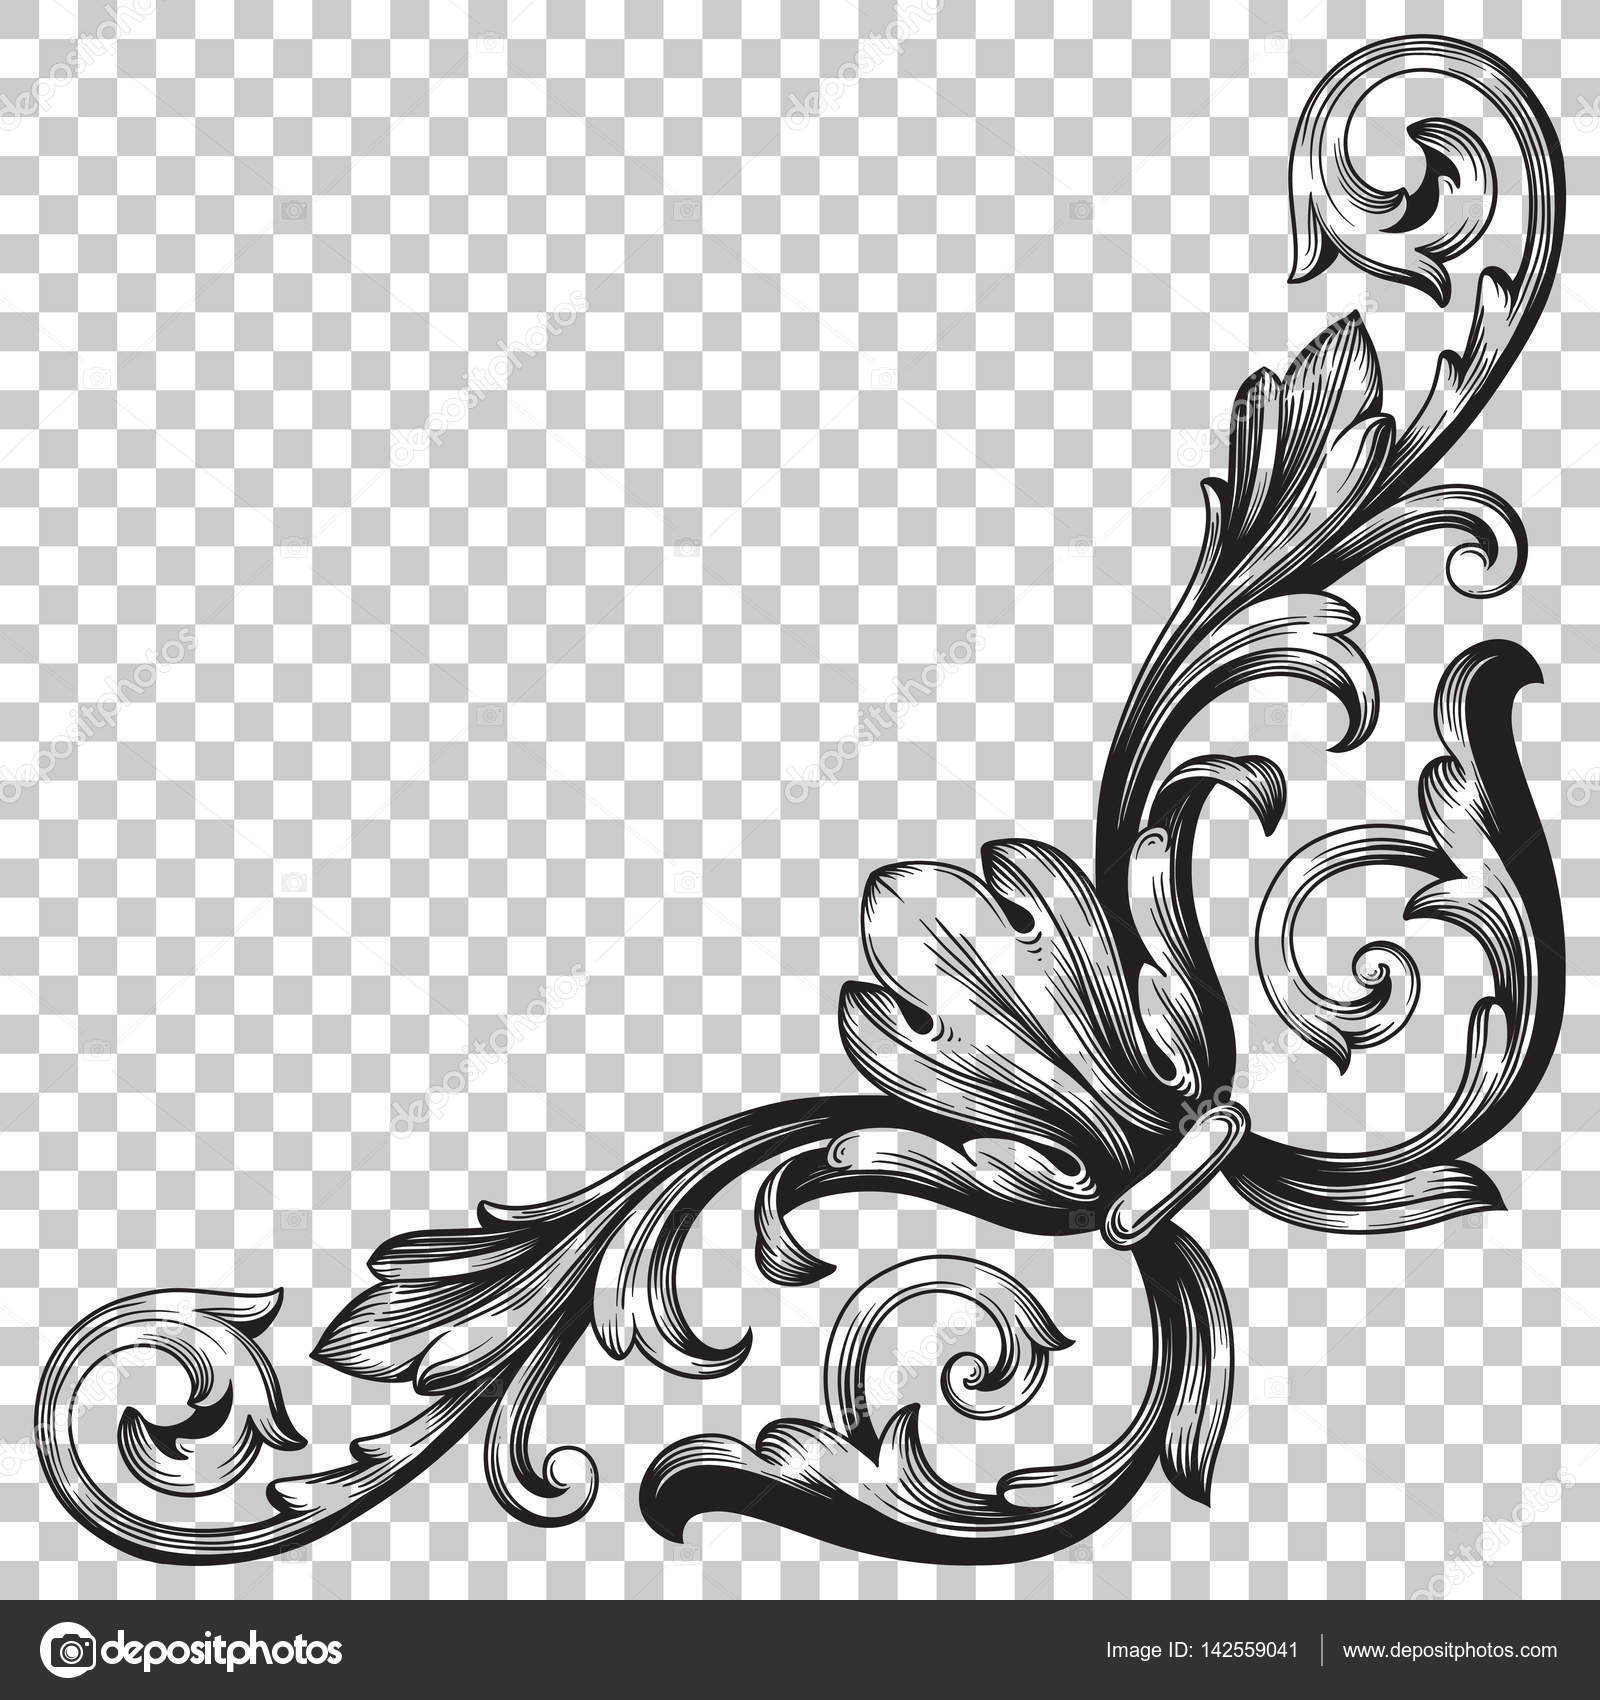 Corner baroque ornament decoration element stock vector isolate vintage corner baroque ornament retro pattern antique style acanthus decorative design element filigree calligraphy vector you can use for wedding junglespirit Image collections